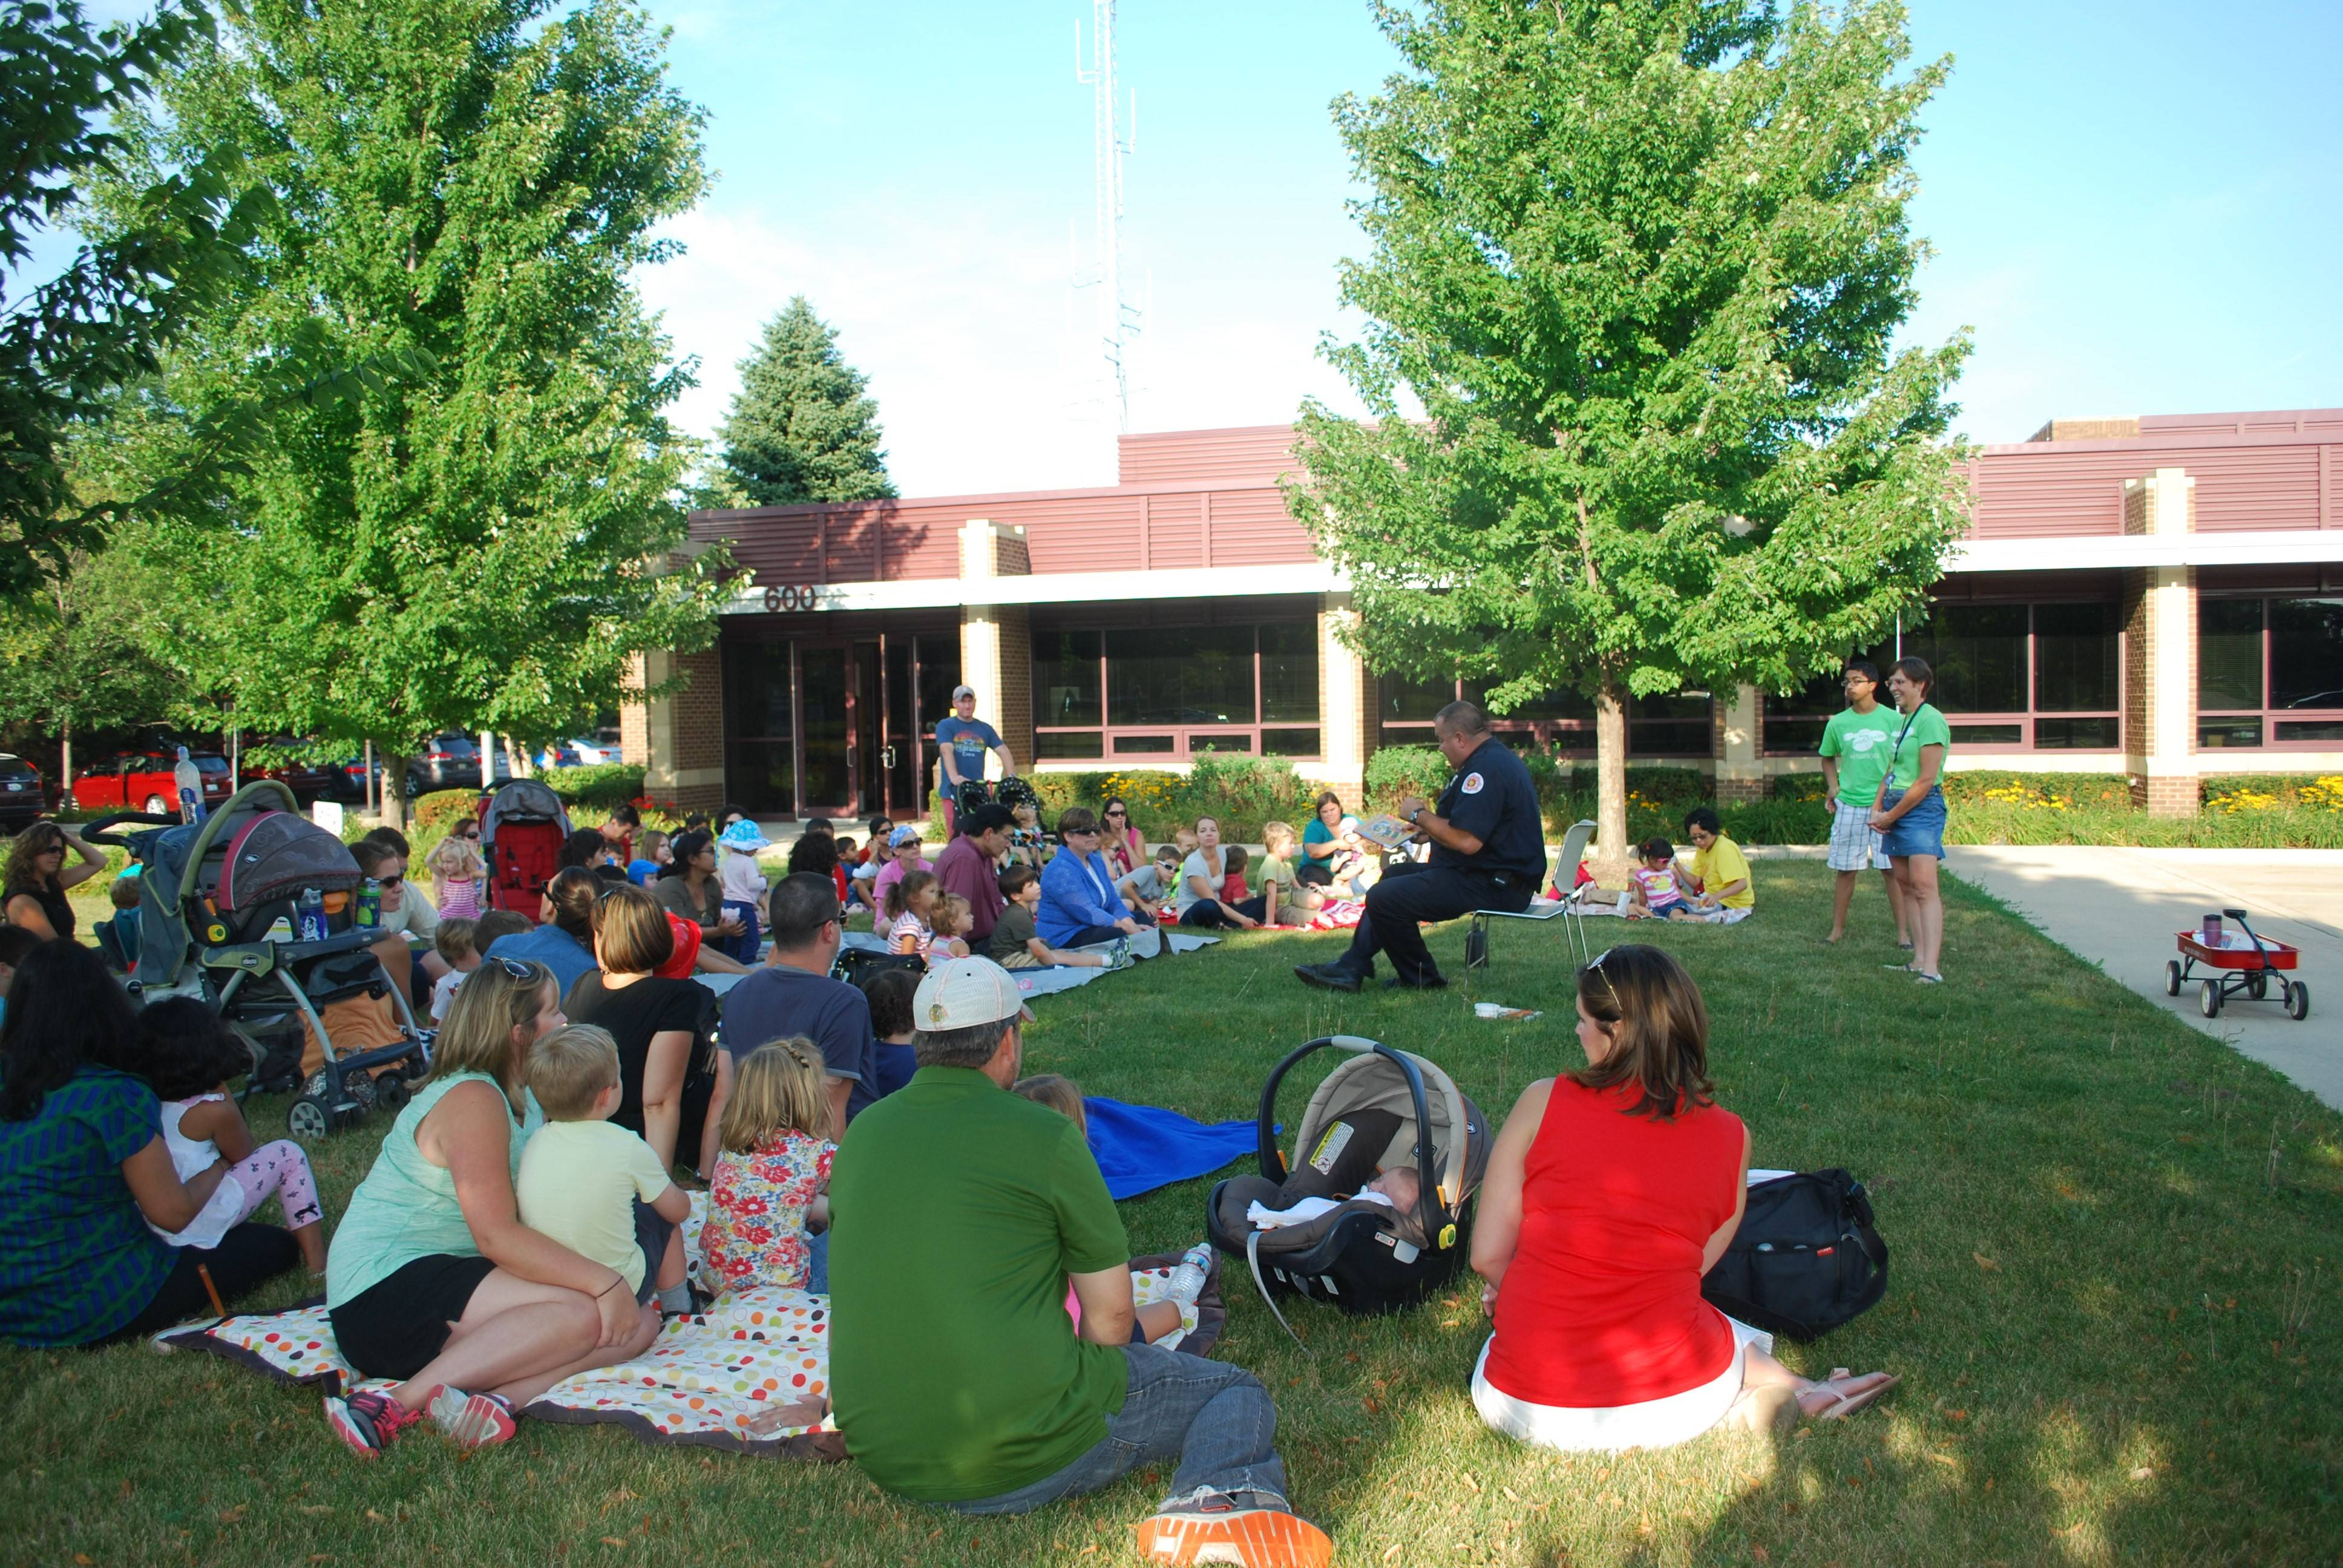 Countryside Fire Protection District recently hosted the Cook Memorial Public Library Storytelling evening in front of the firehouse in Vernon Hills.